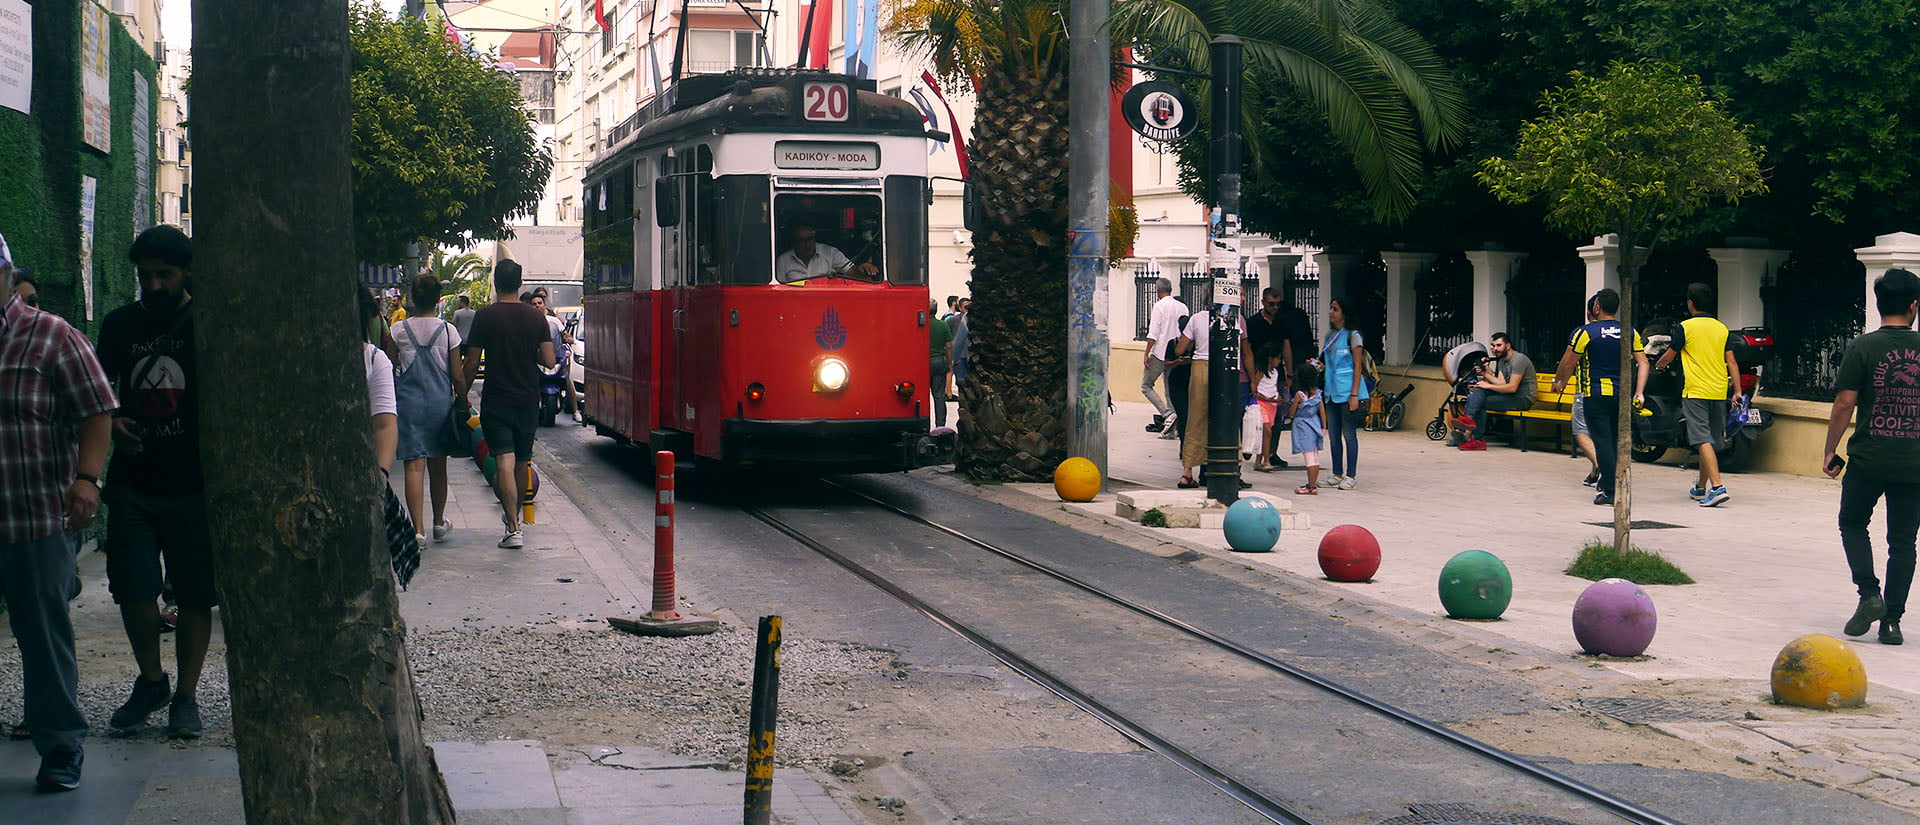 How to use Istanbul's public transportation